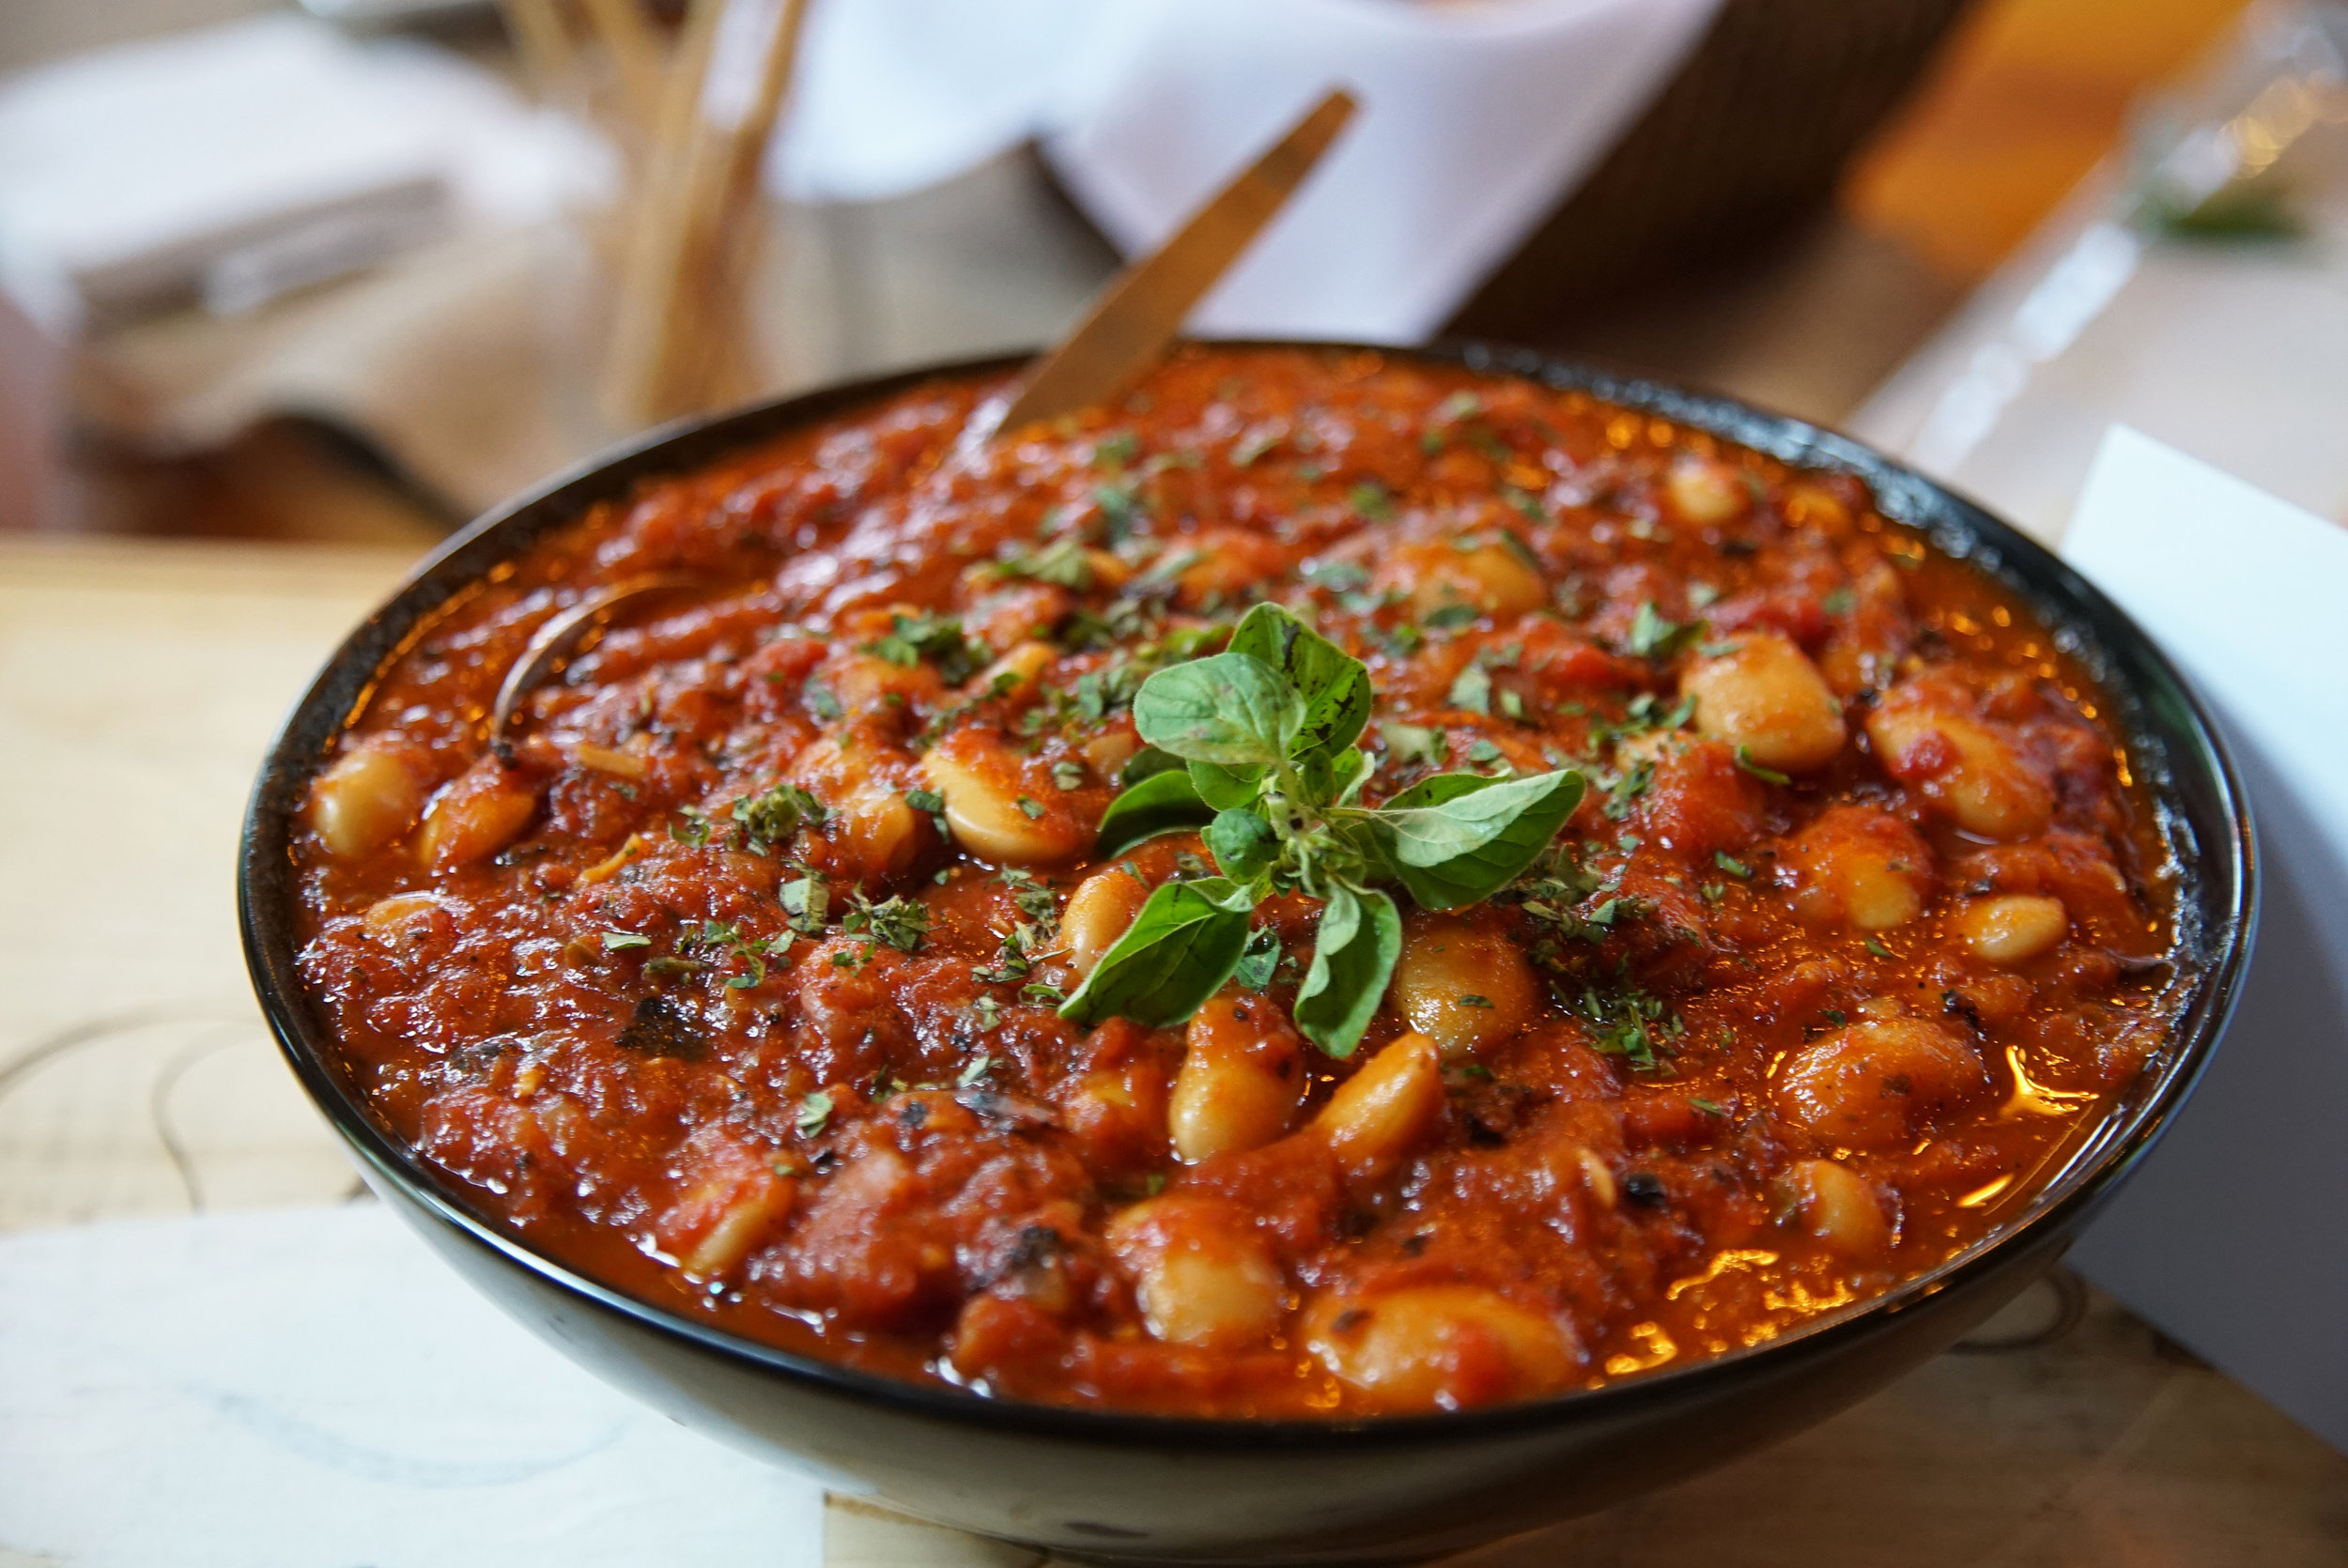 Koufounisi style stewed gigante beans with tomato, Greek oregano, and warm spices